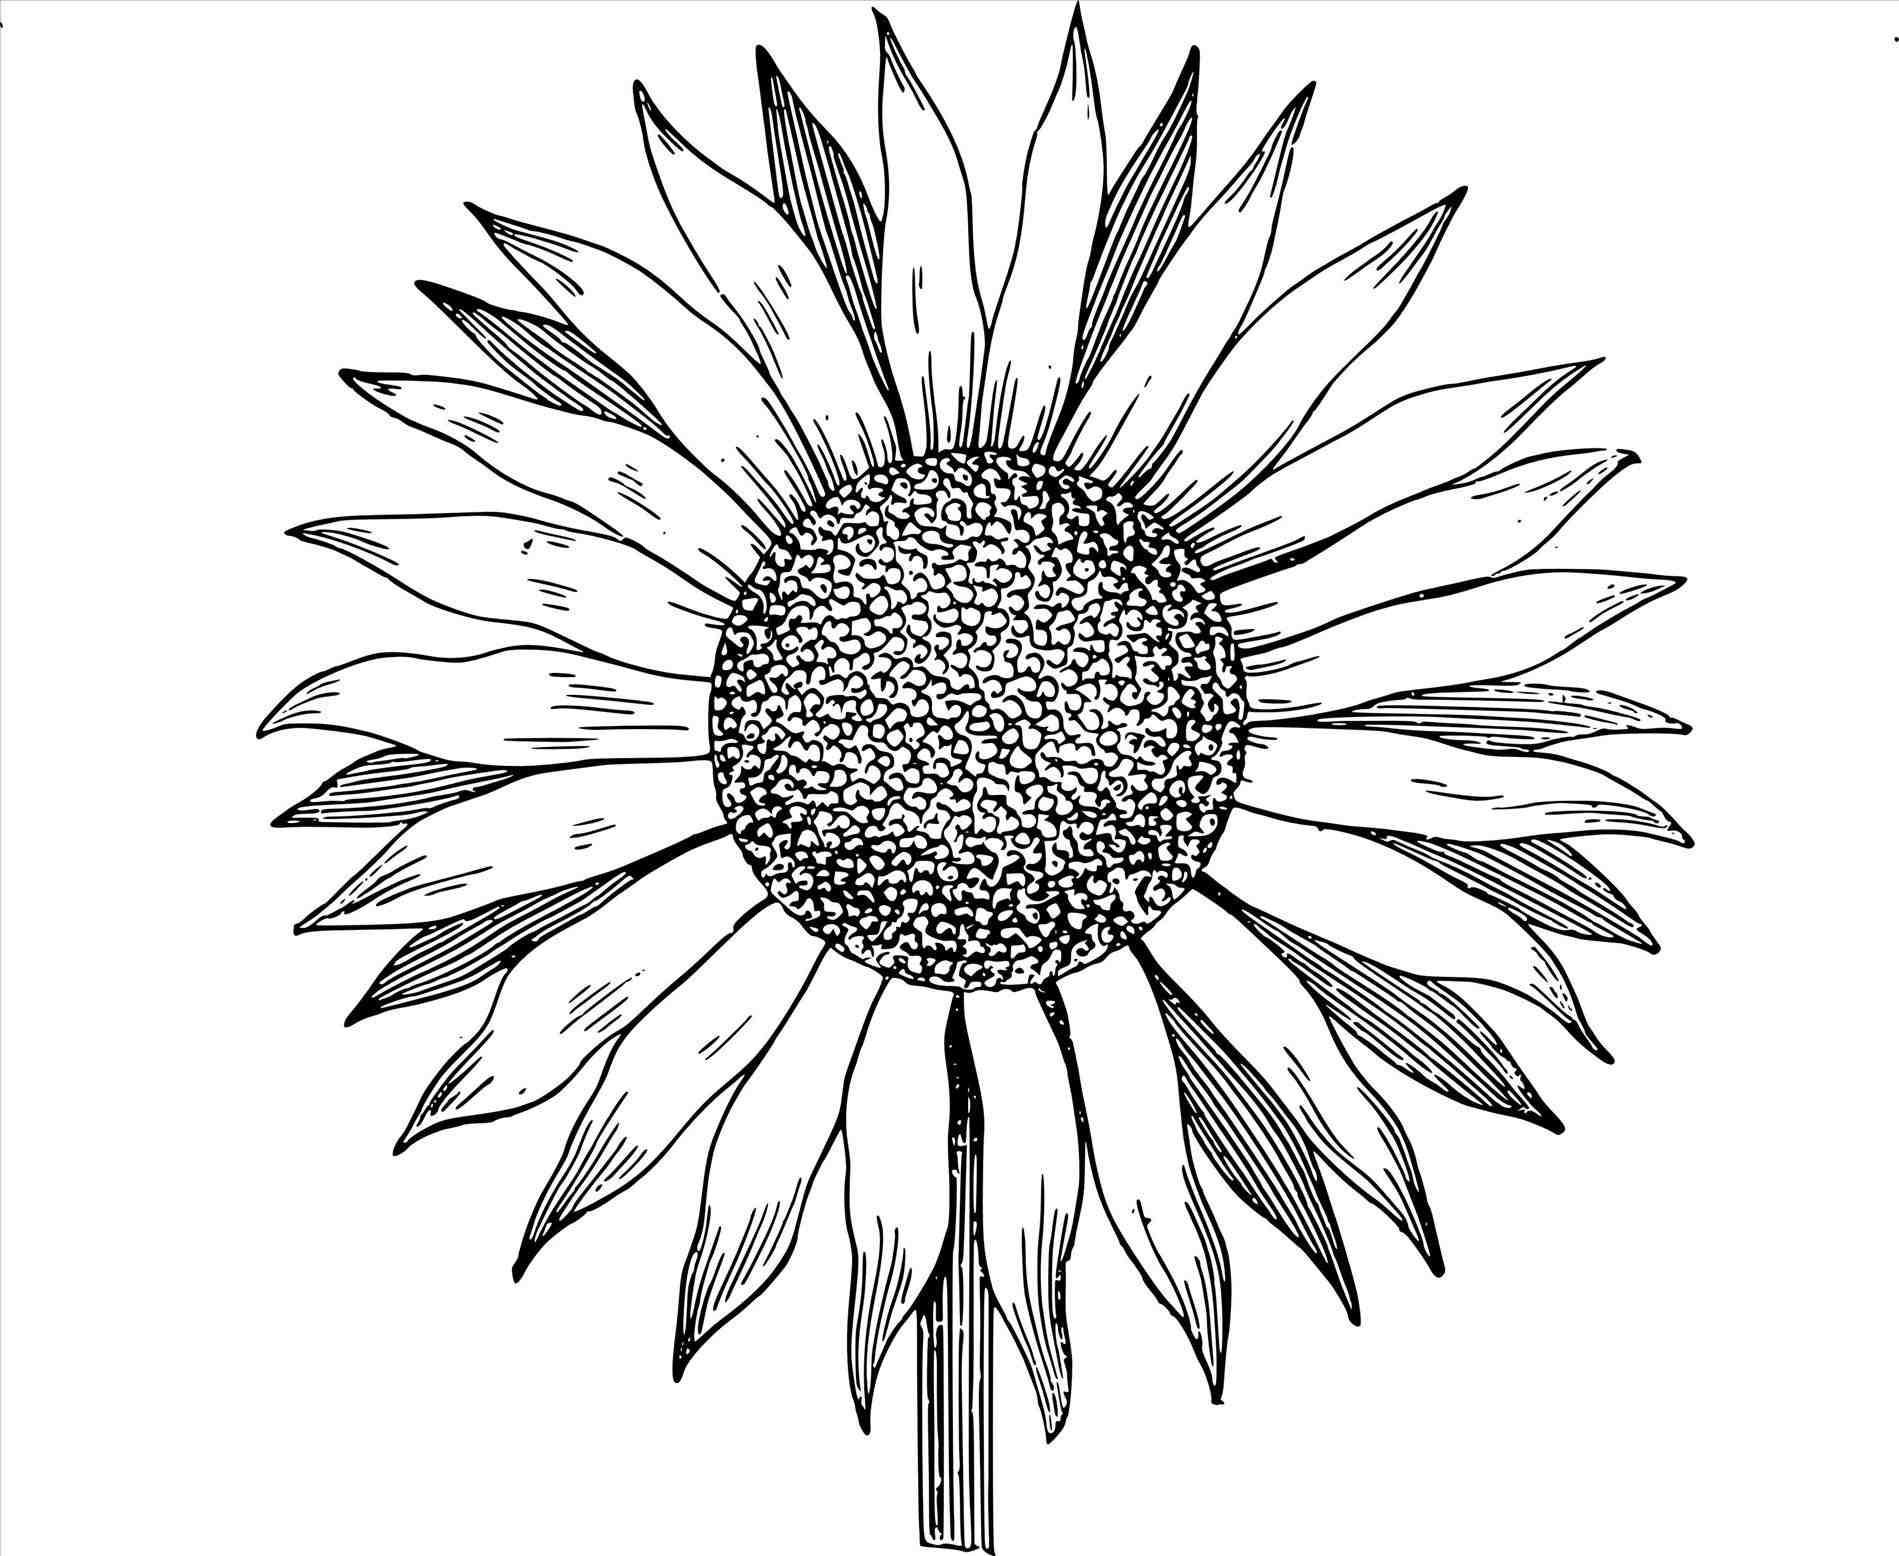 drawings of sunflowers sunflower line drawing etsy of drawings sunflowers